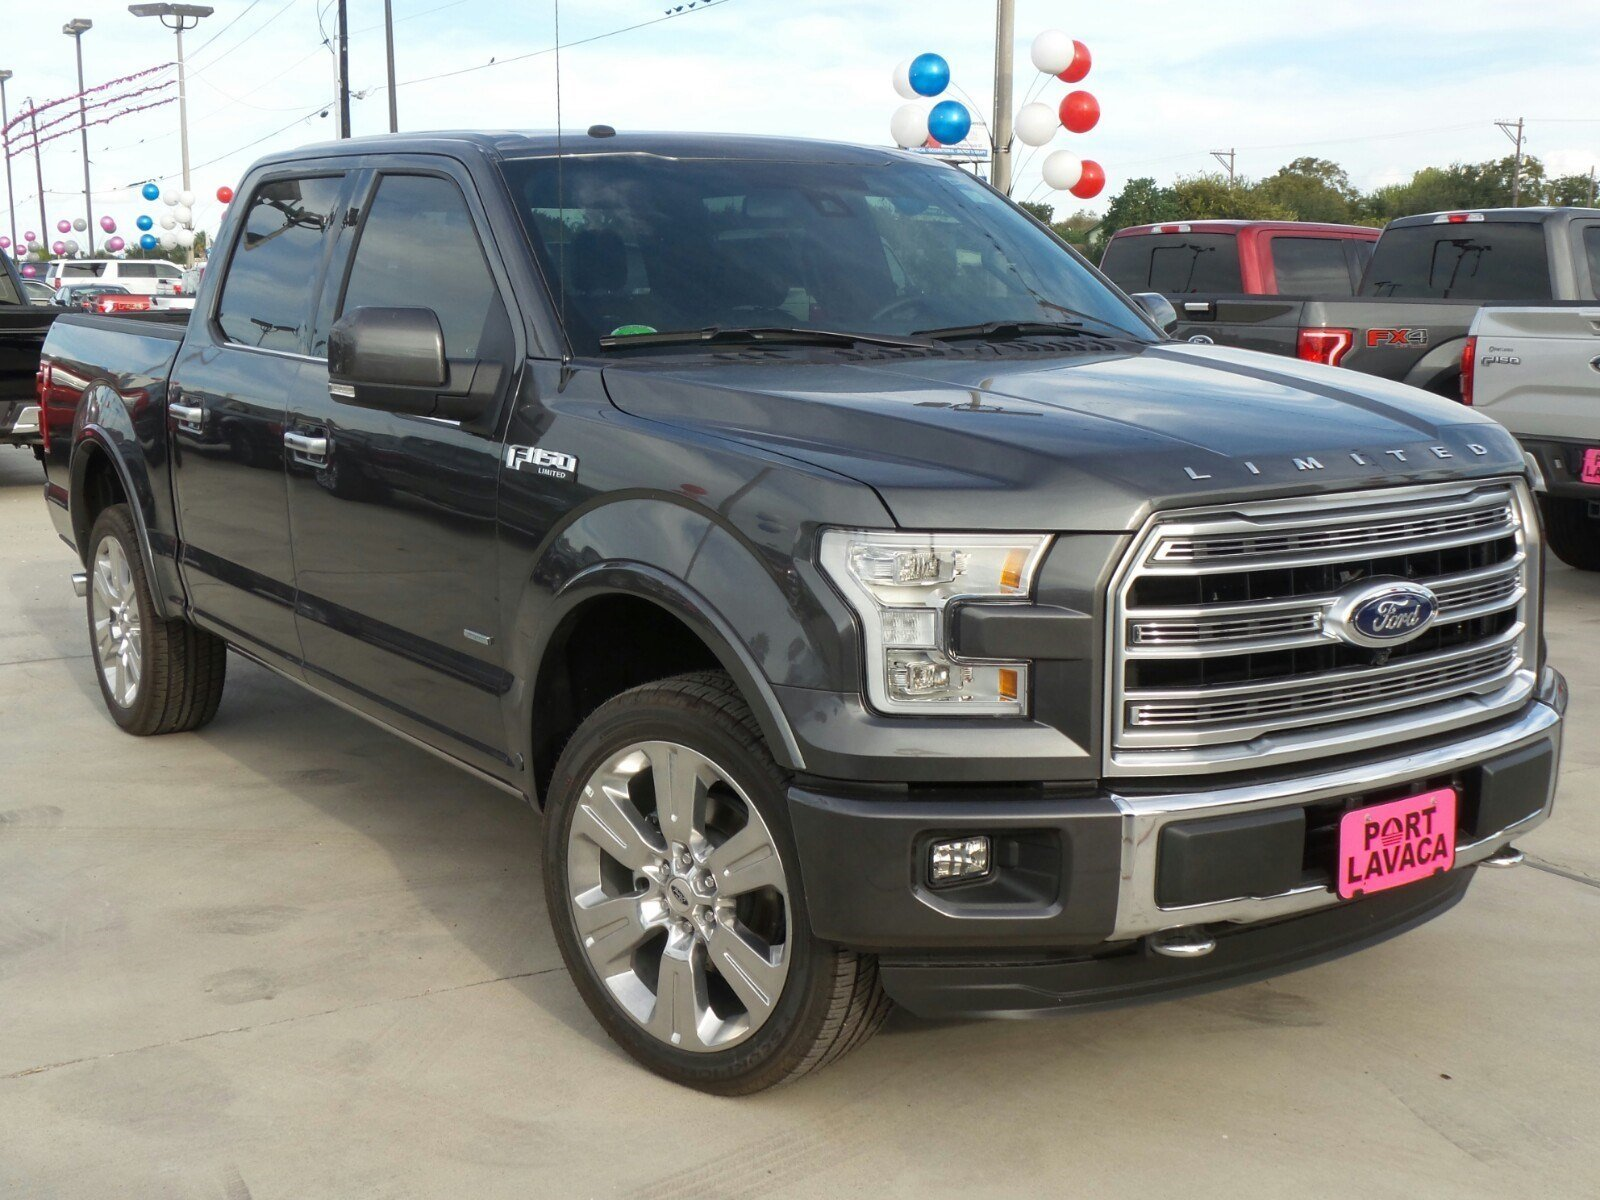 new 2016 ford f 150 limited crew cab pickup in port lavaca fd40924 port lavaca ford. Black Bedroom Furniture Sets. Home Design Ideas